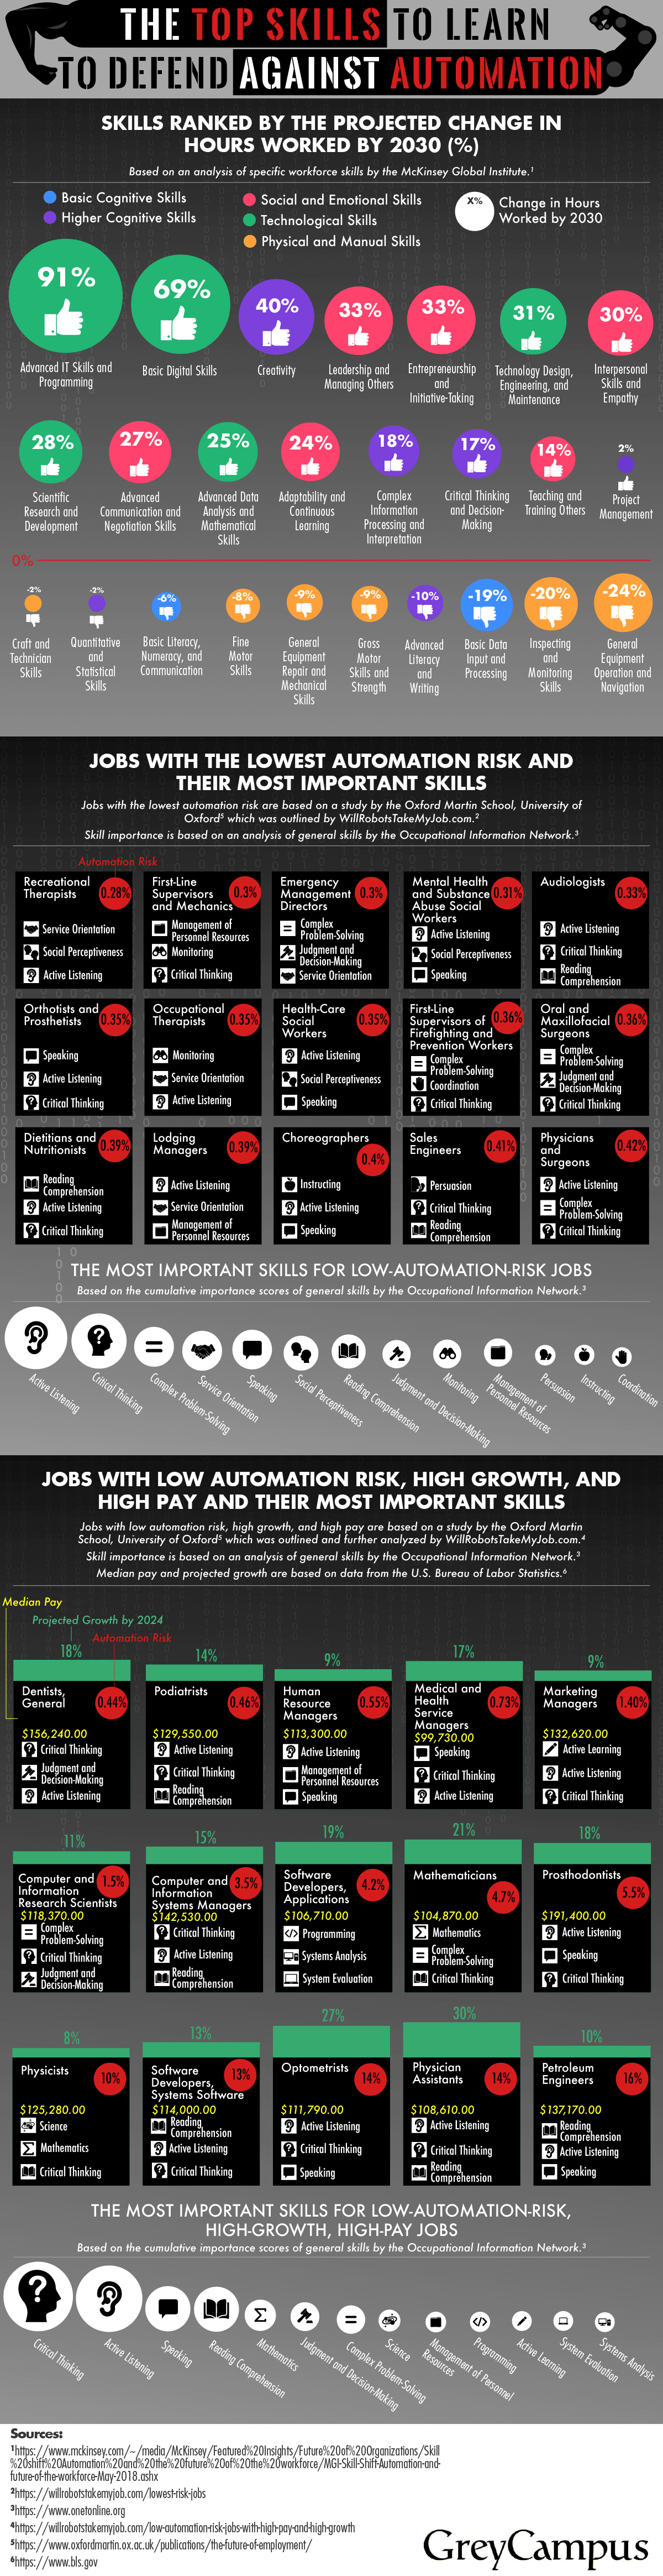 The Top Skills to Learn to Defend Against Automation (Infographic)